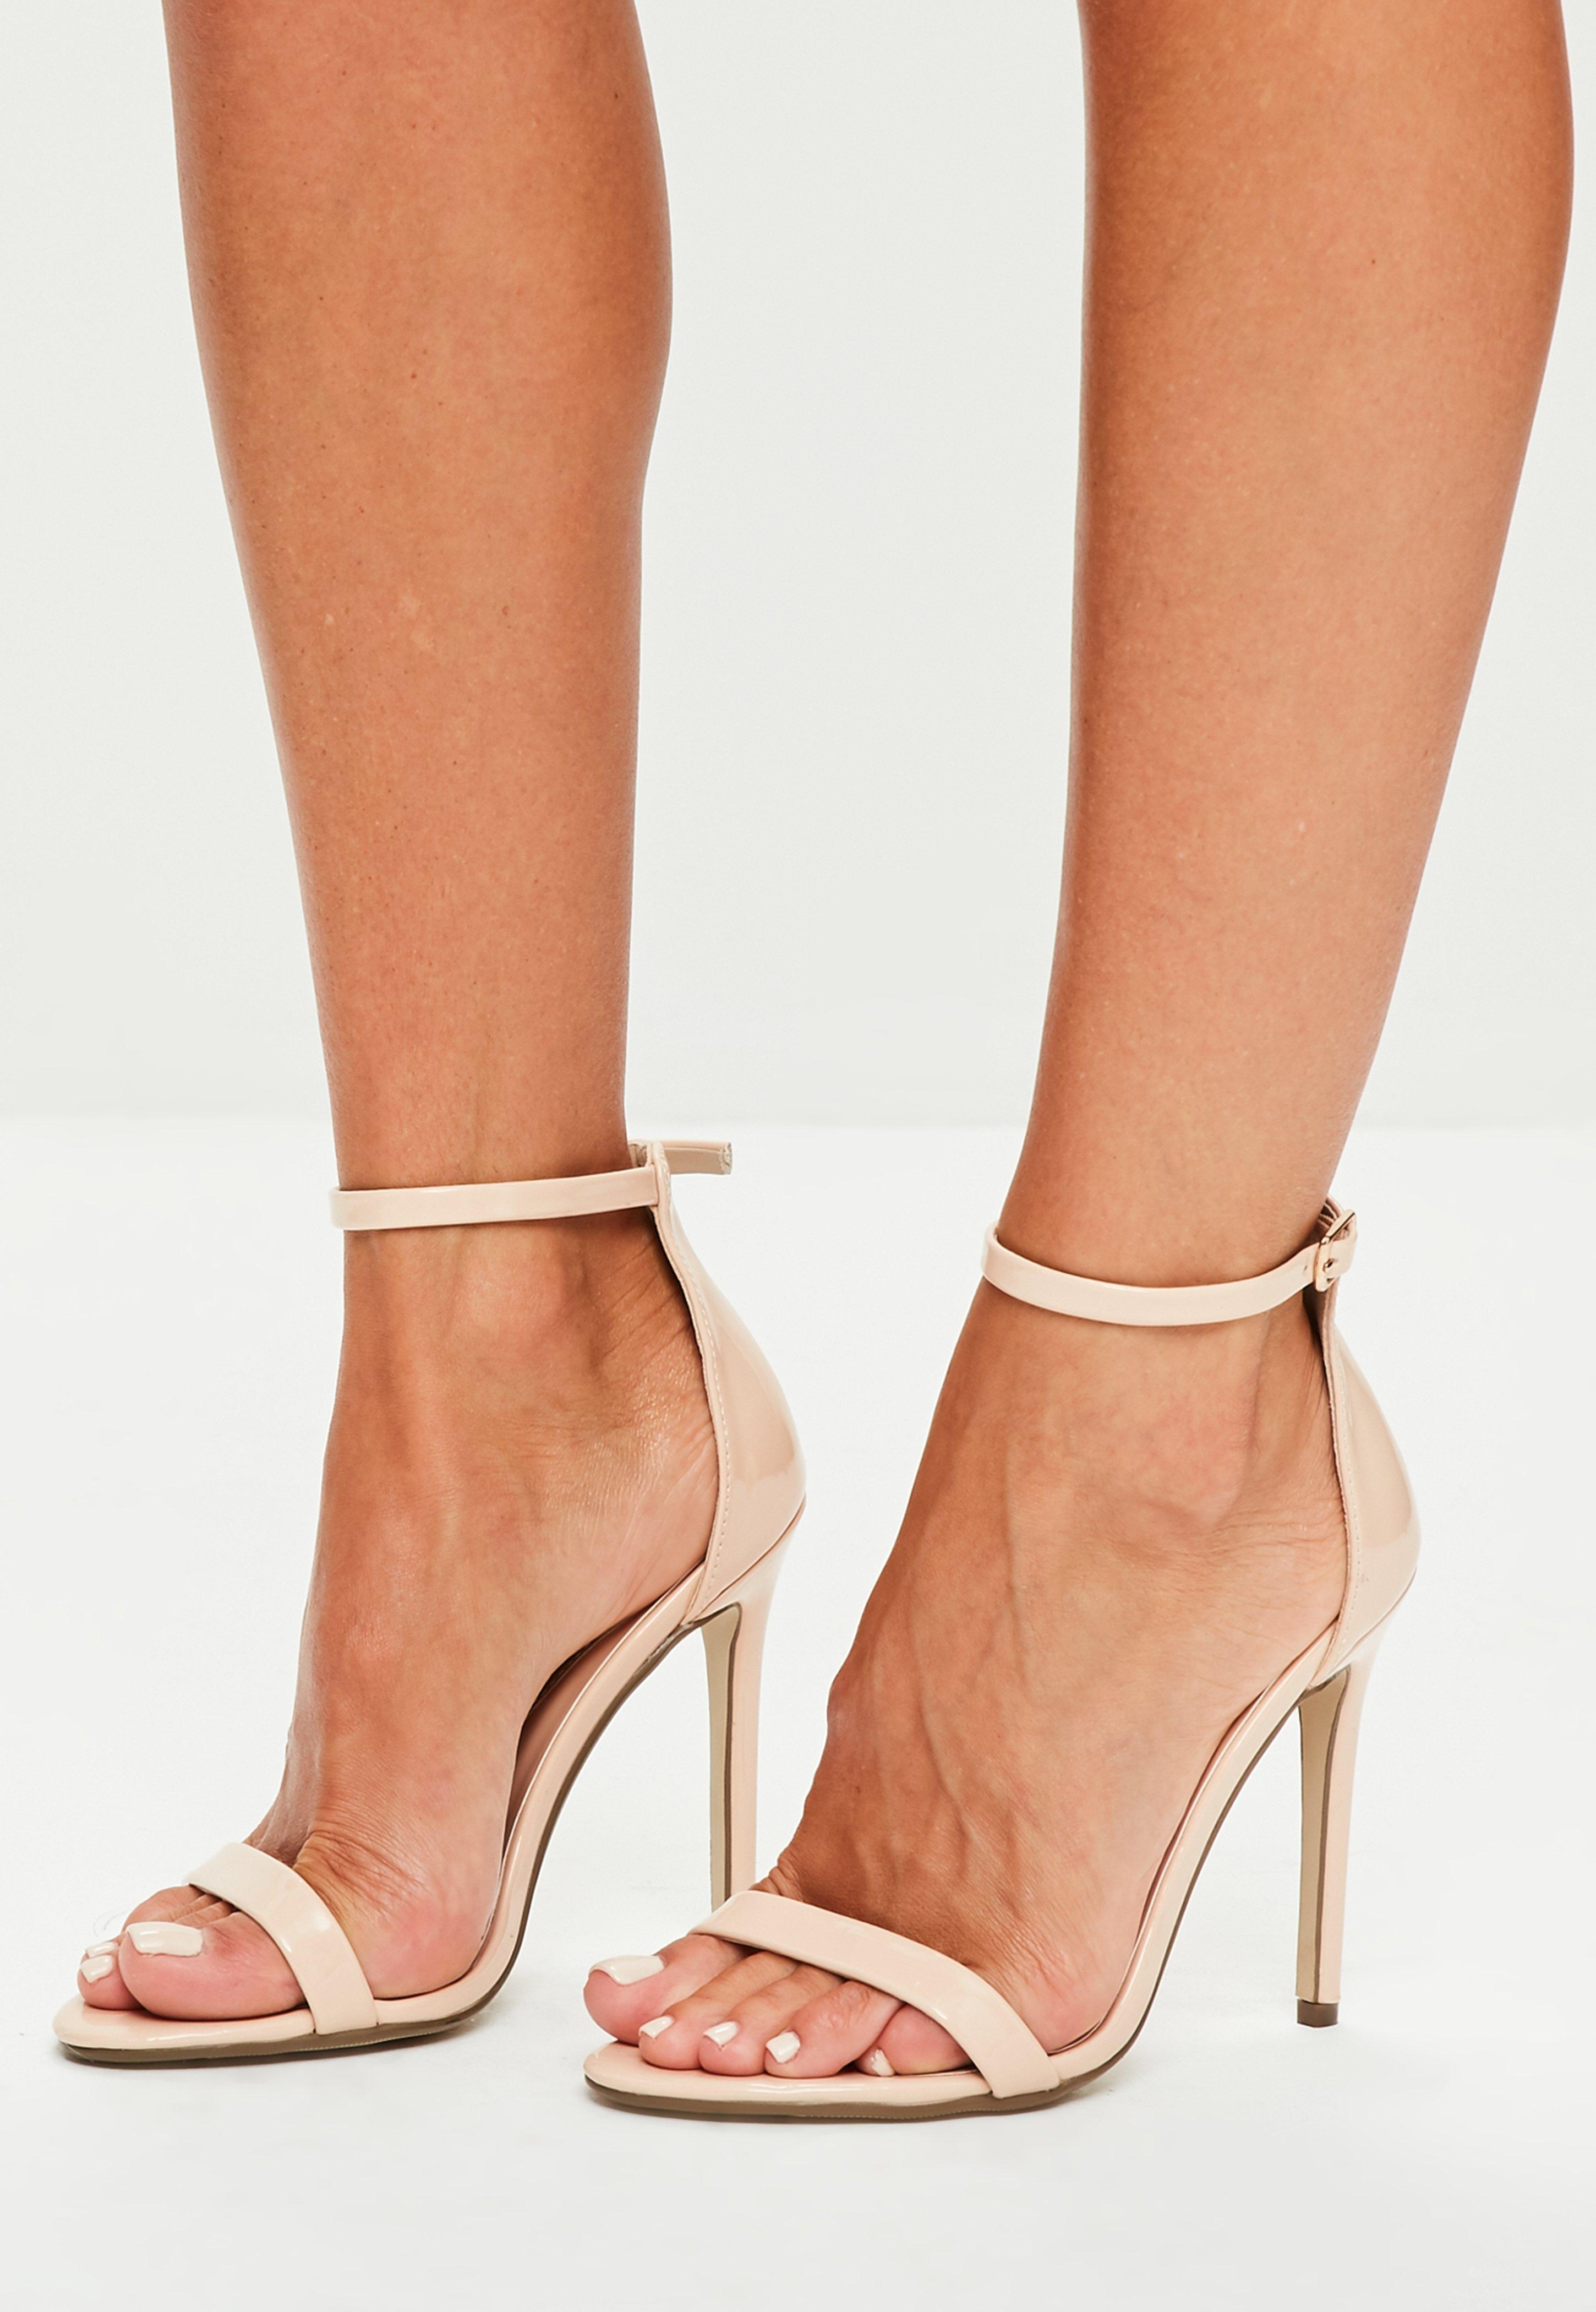 5aa53612c471 Missguided Nude Patent Ankle Strap Heels in Natural - Lyst